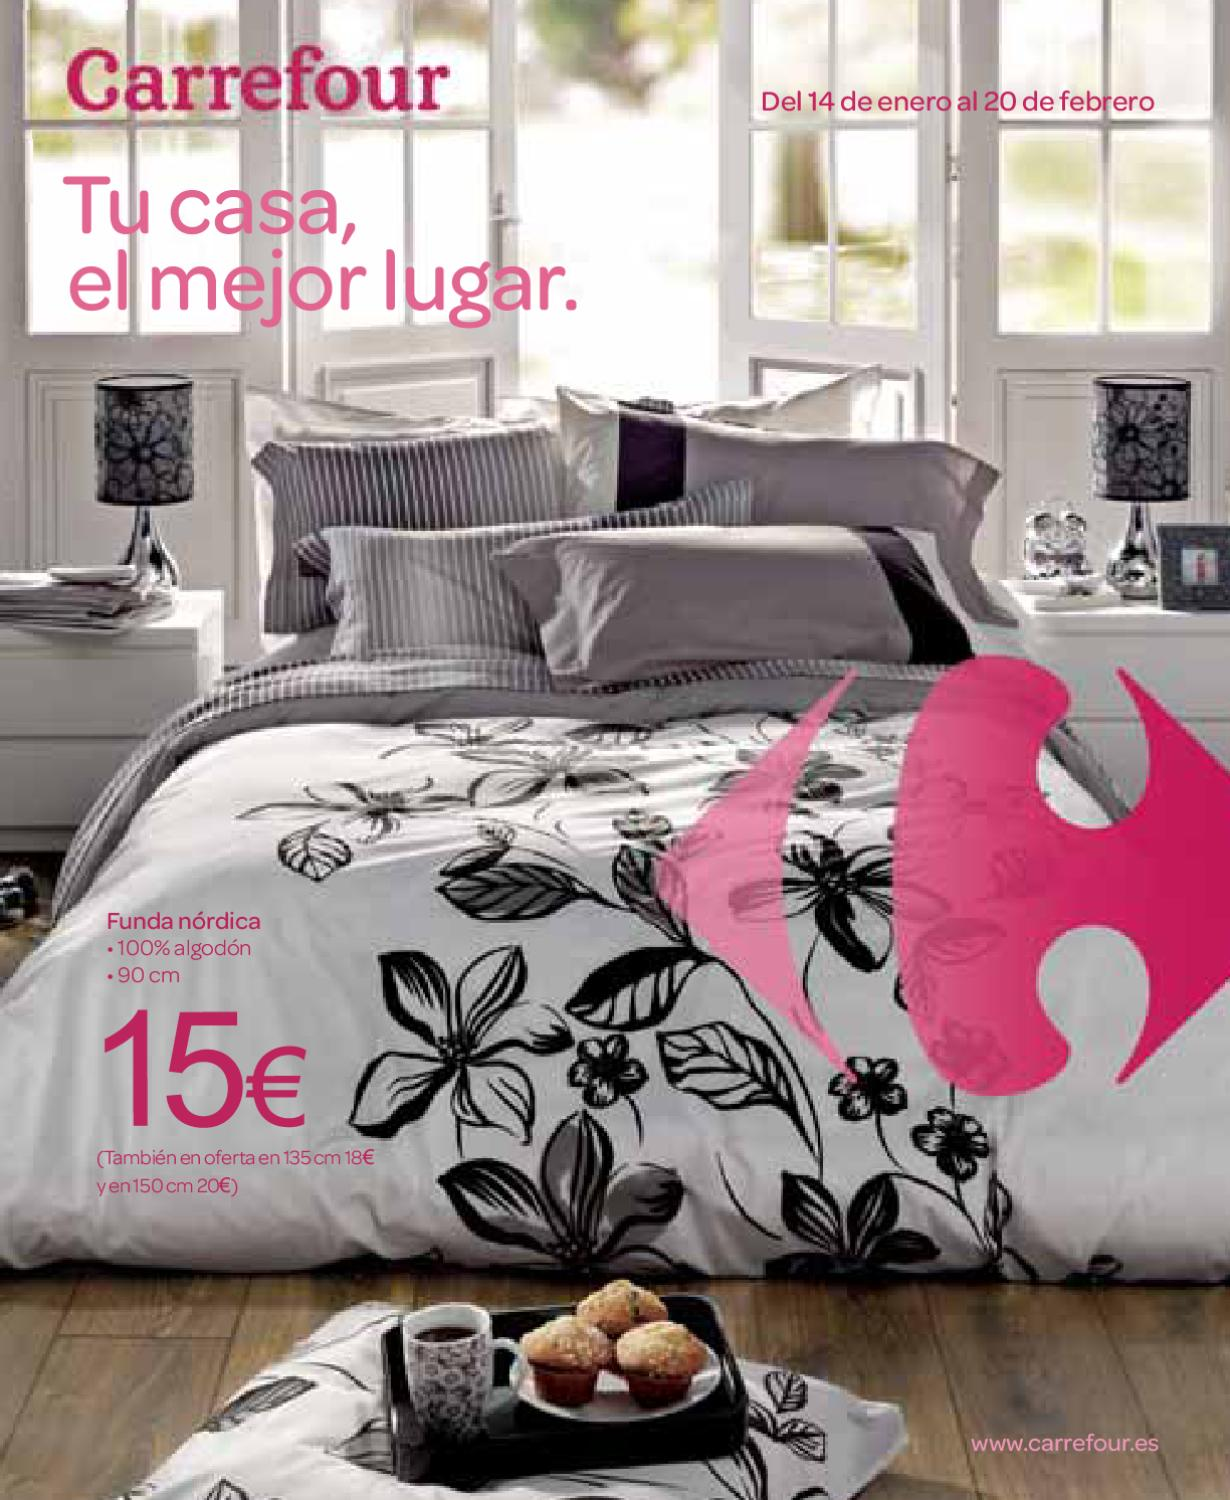 Hogar carrefour by maria martin issuu Fundas nordicas carrefour